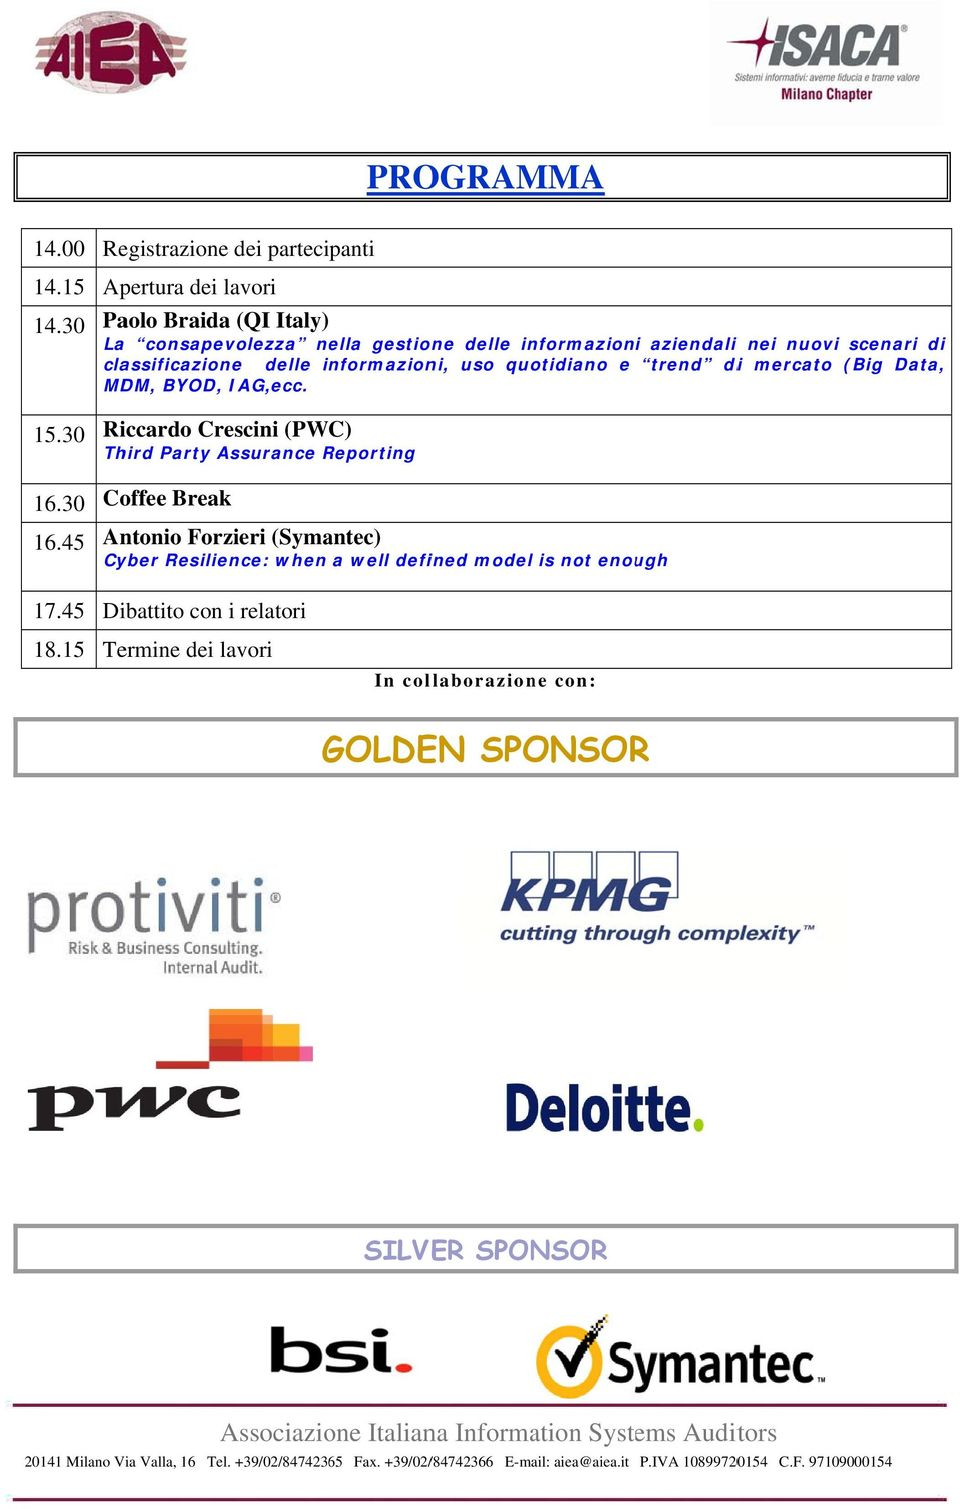 quotidiano e trend dii mercato (Big Data, MDM, BYOD, IAG,ecc. 15.30 Third Party Assurance Reporting 16.30 Coffee Break 16.